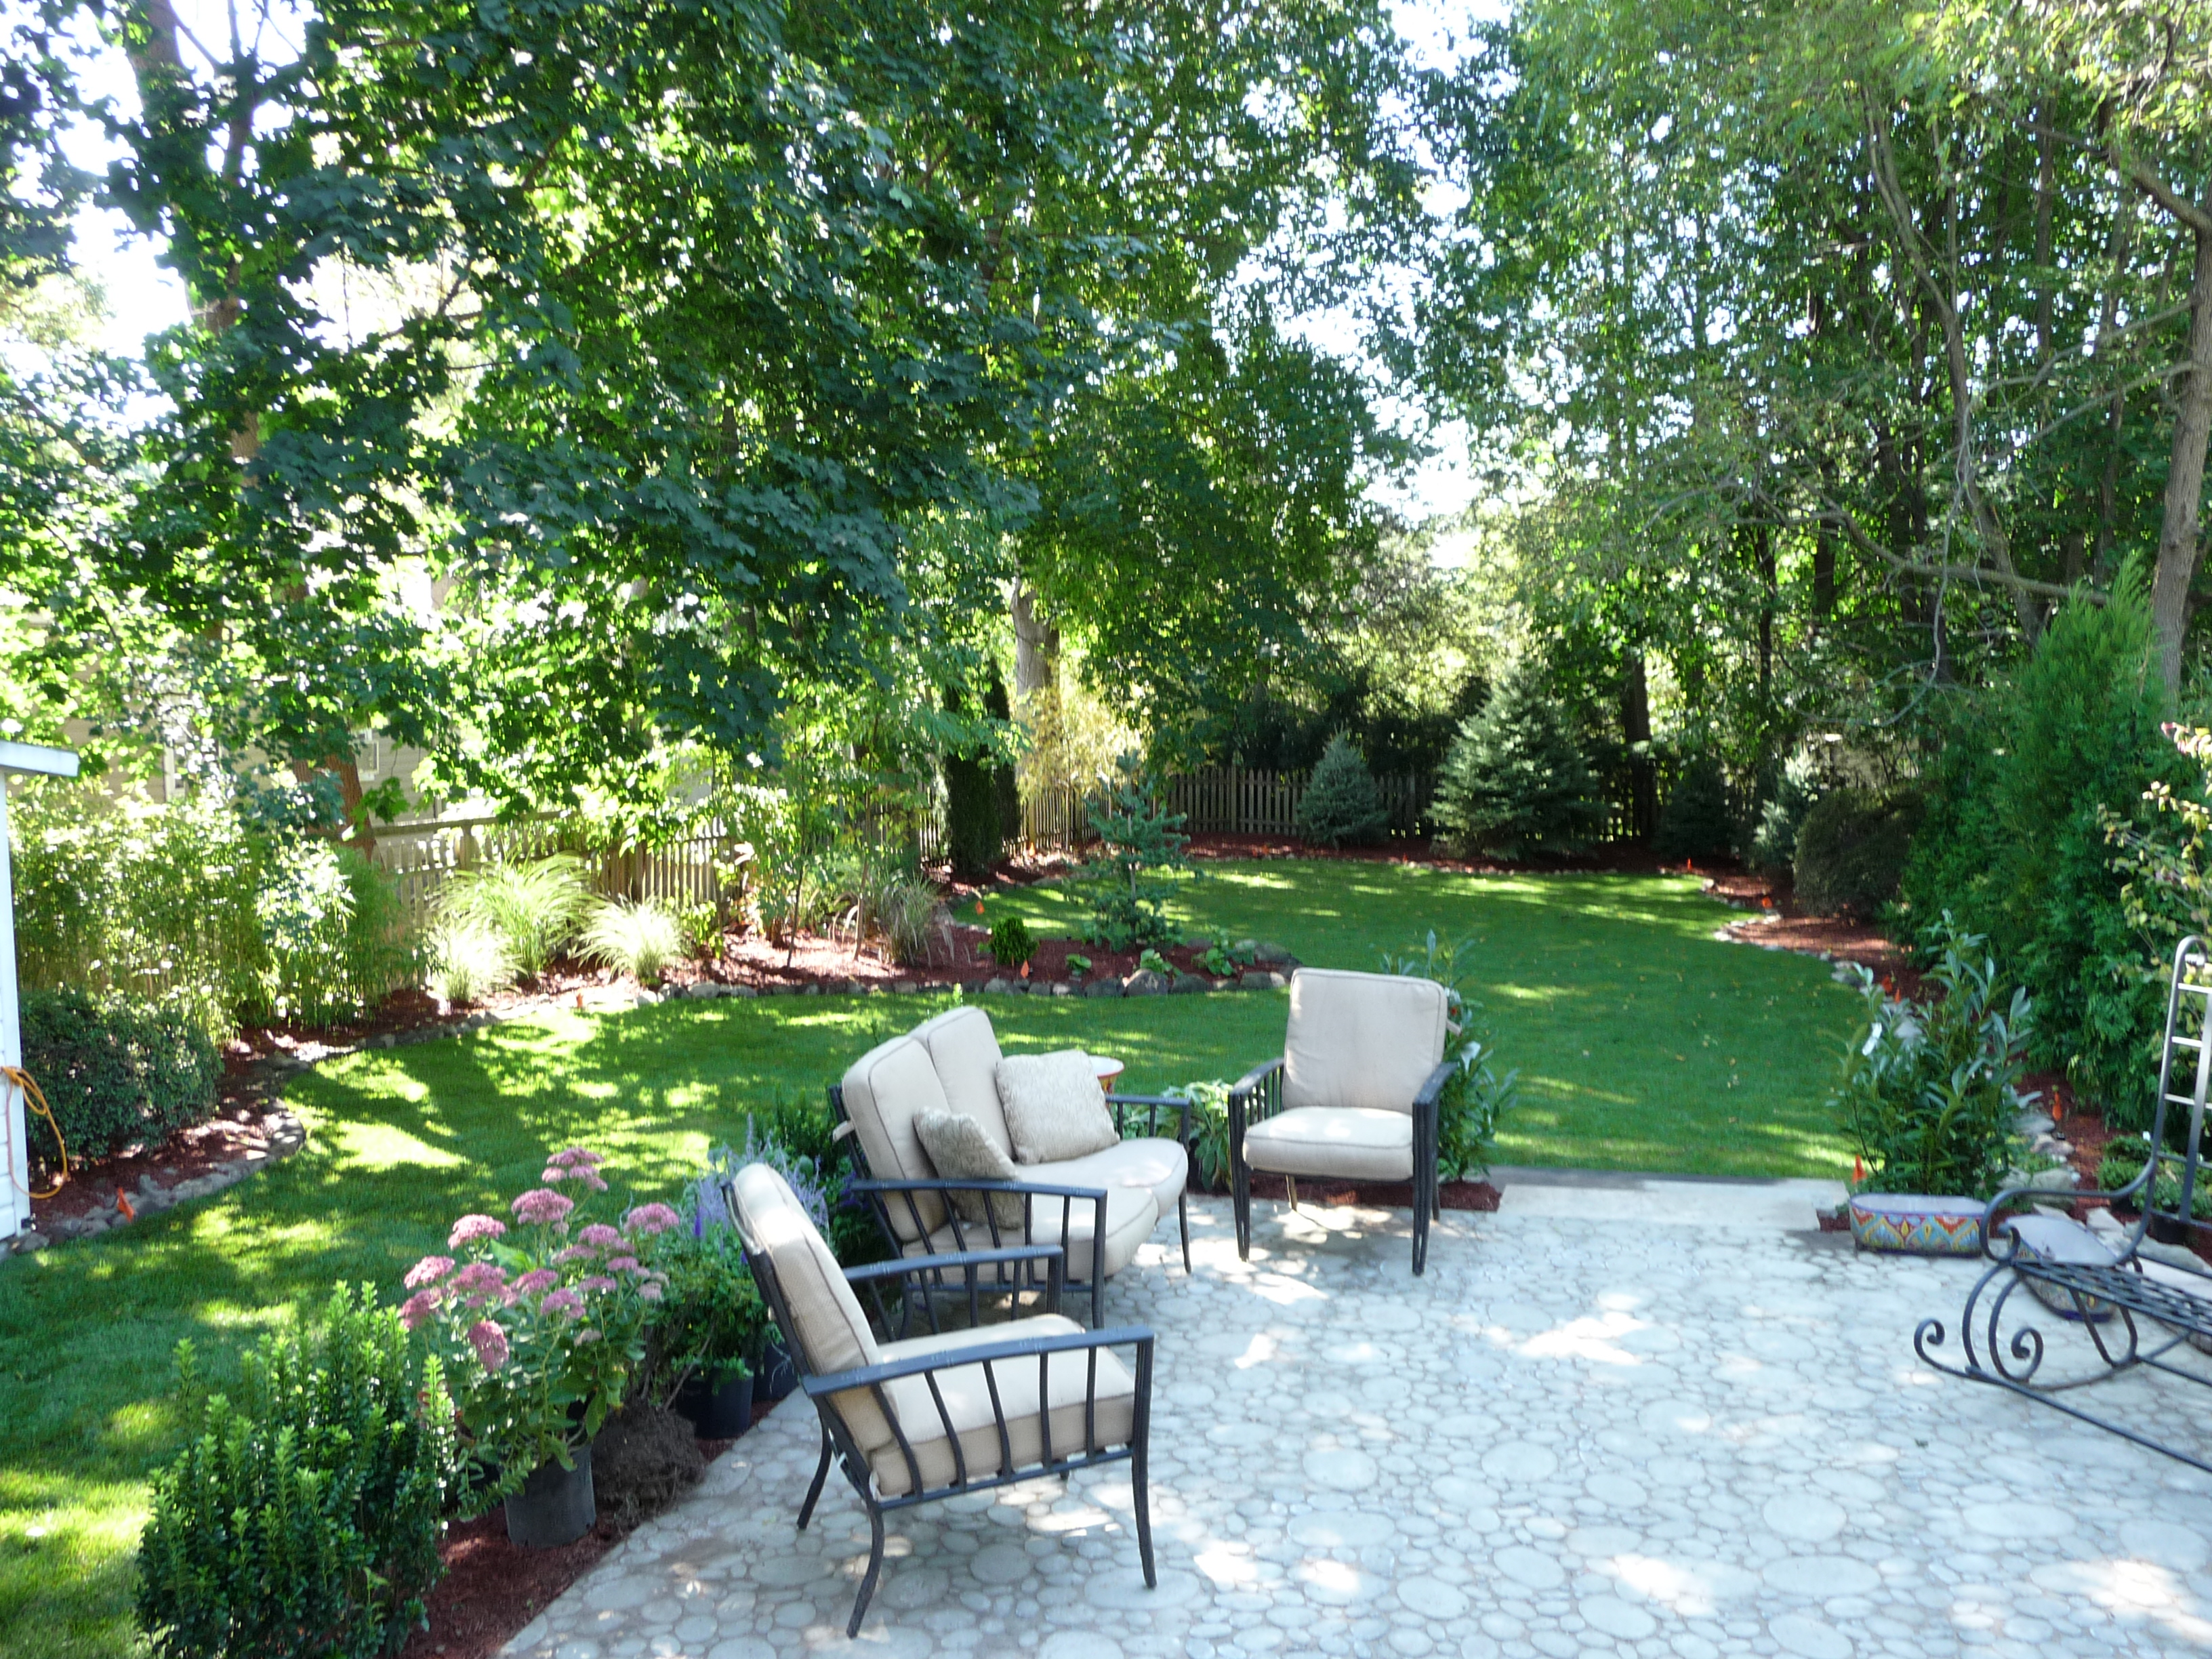 patio pavers with lawn furniture